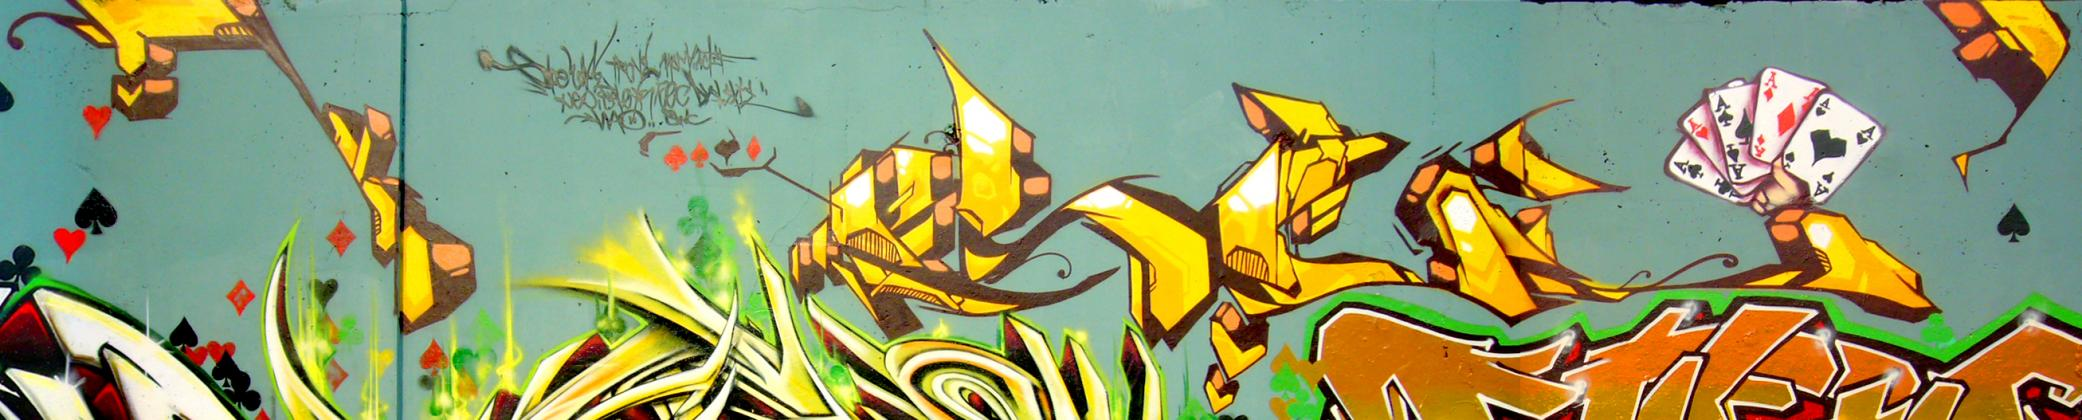 ols-edf_graffiti_2007-04-07_3hc-all-in_01.jpg